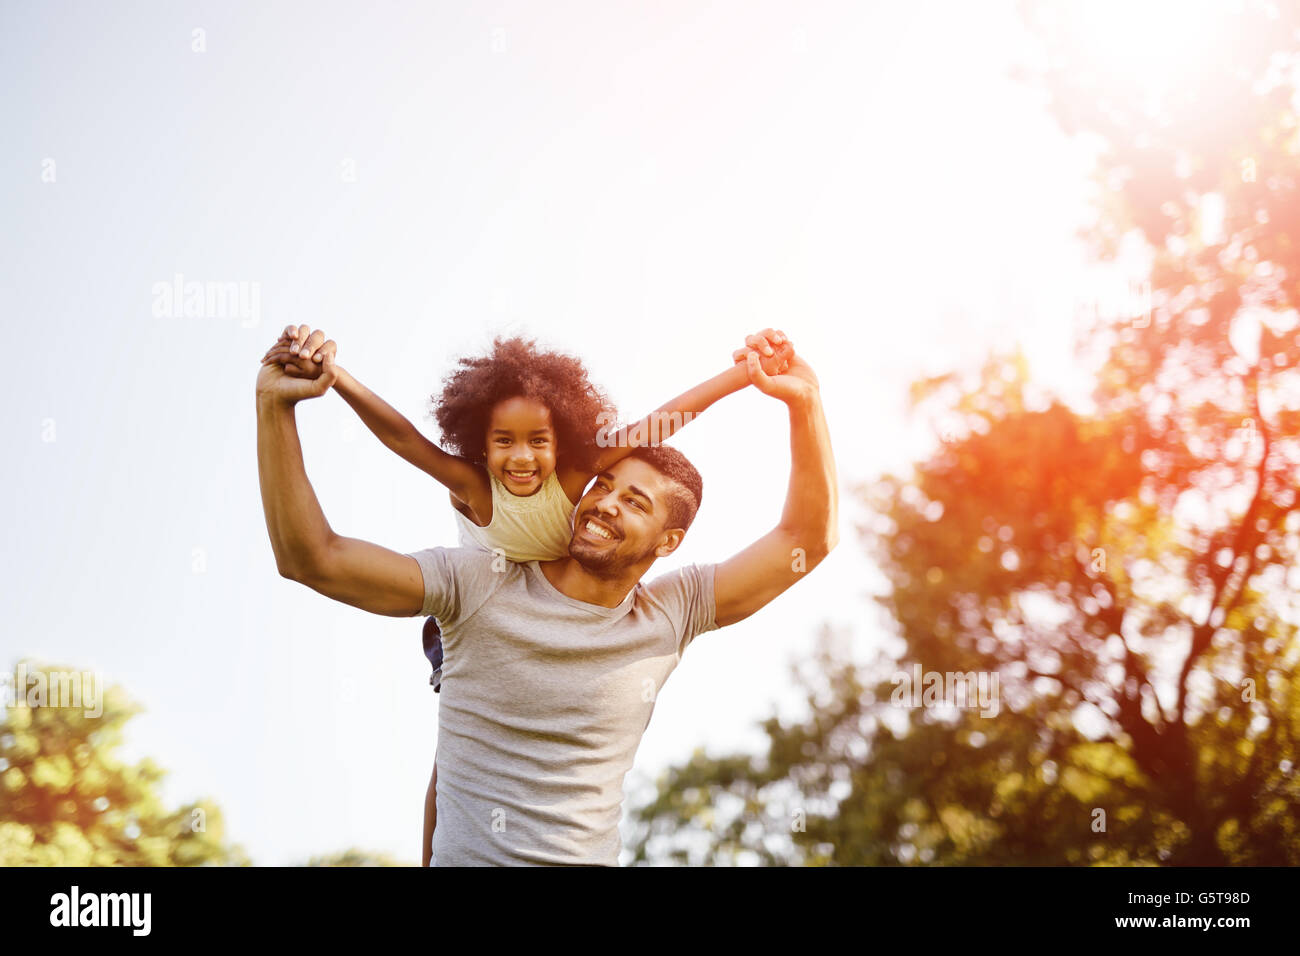 Father carrying daughter piggyback and being truly happy - Stock Image